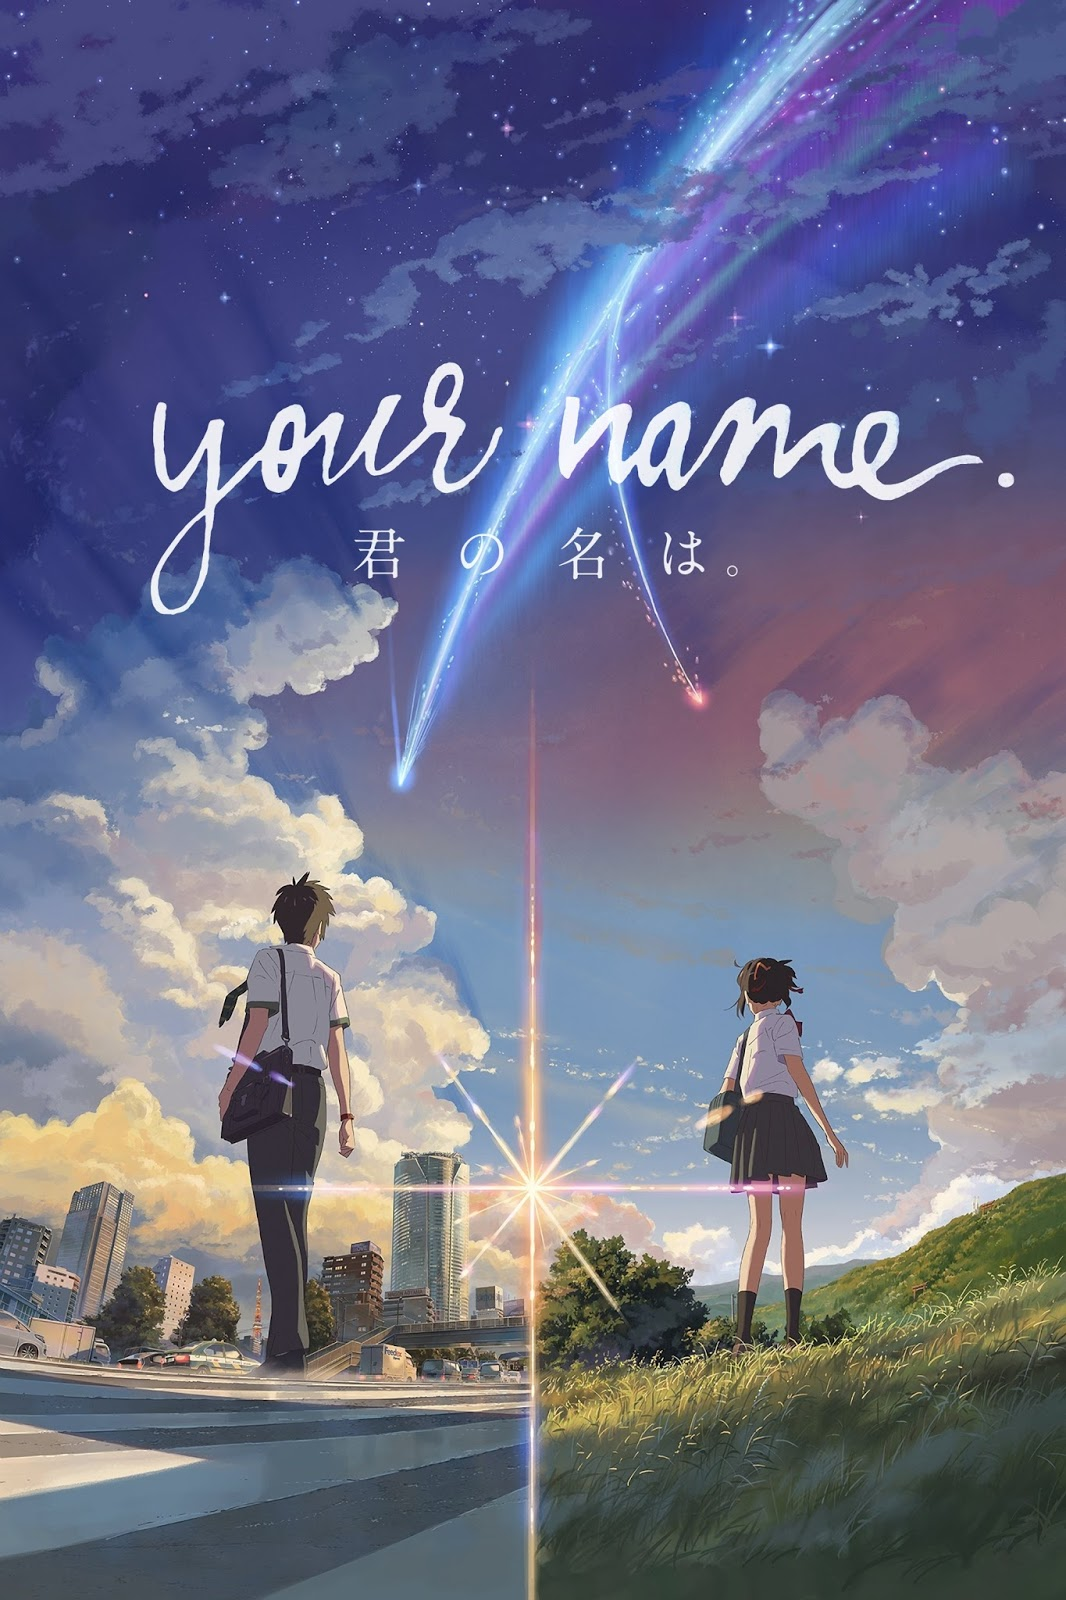 Animated Releases: The Threads of Fate: Your Name (2017) - Reviewed